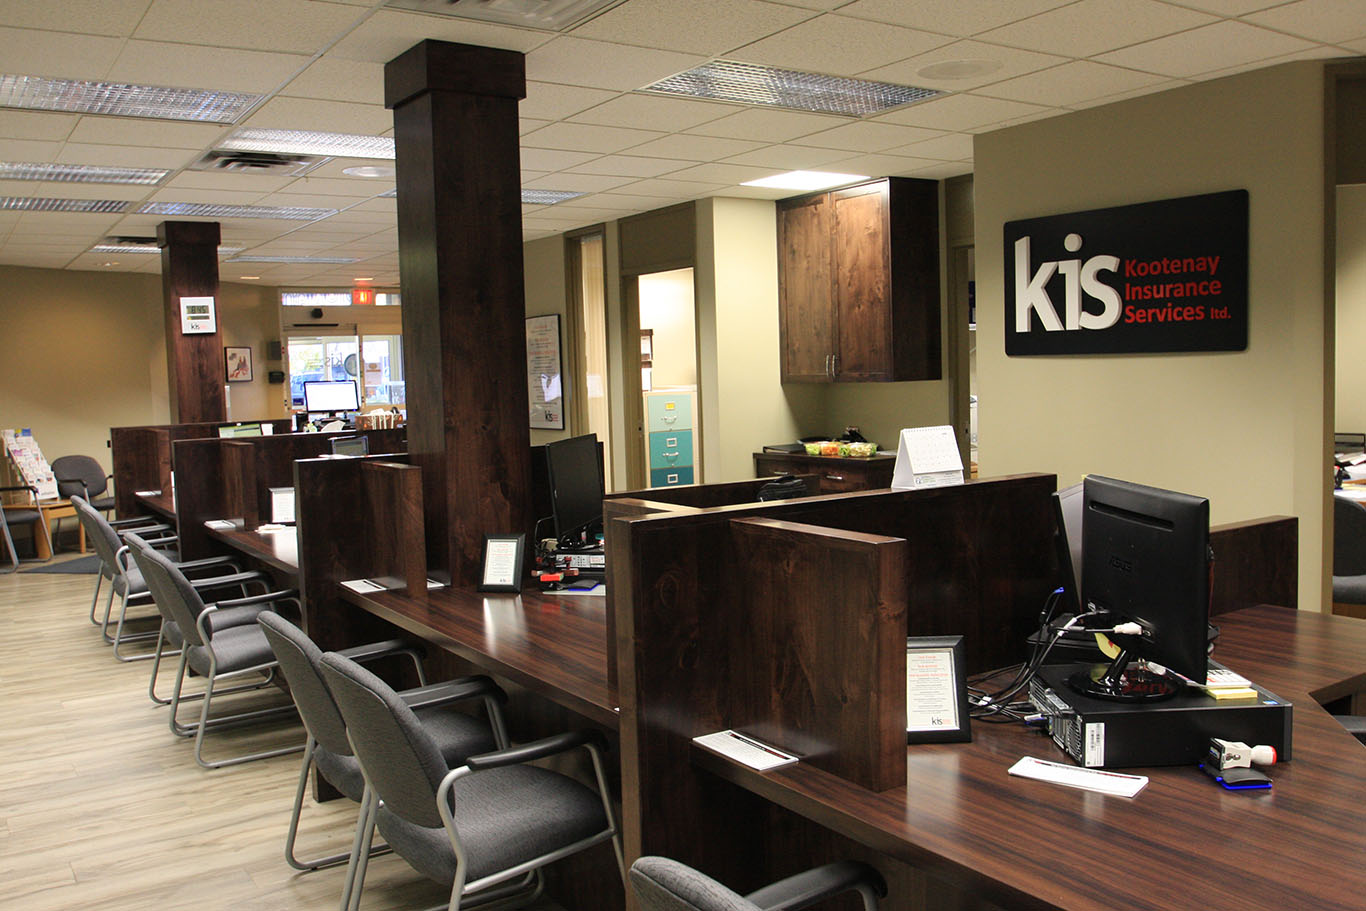 KIS_office_reception_cabinetry_011.jpg